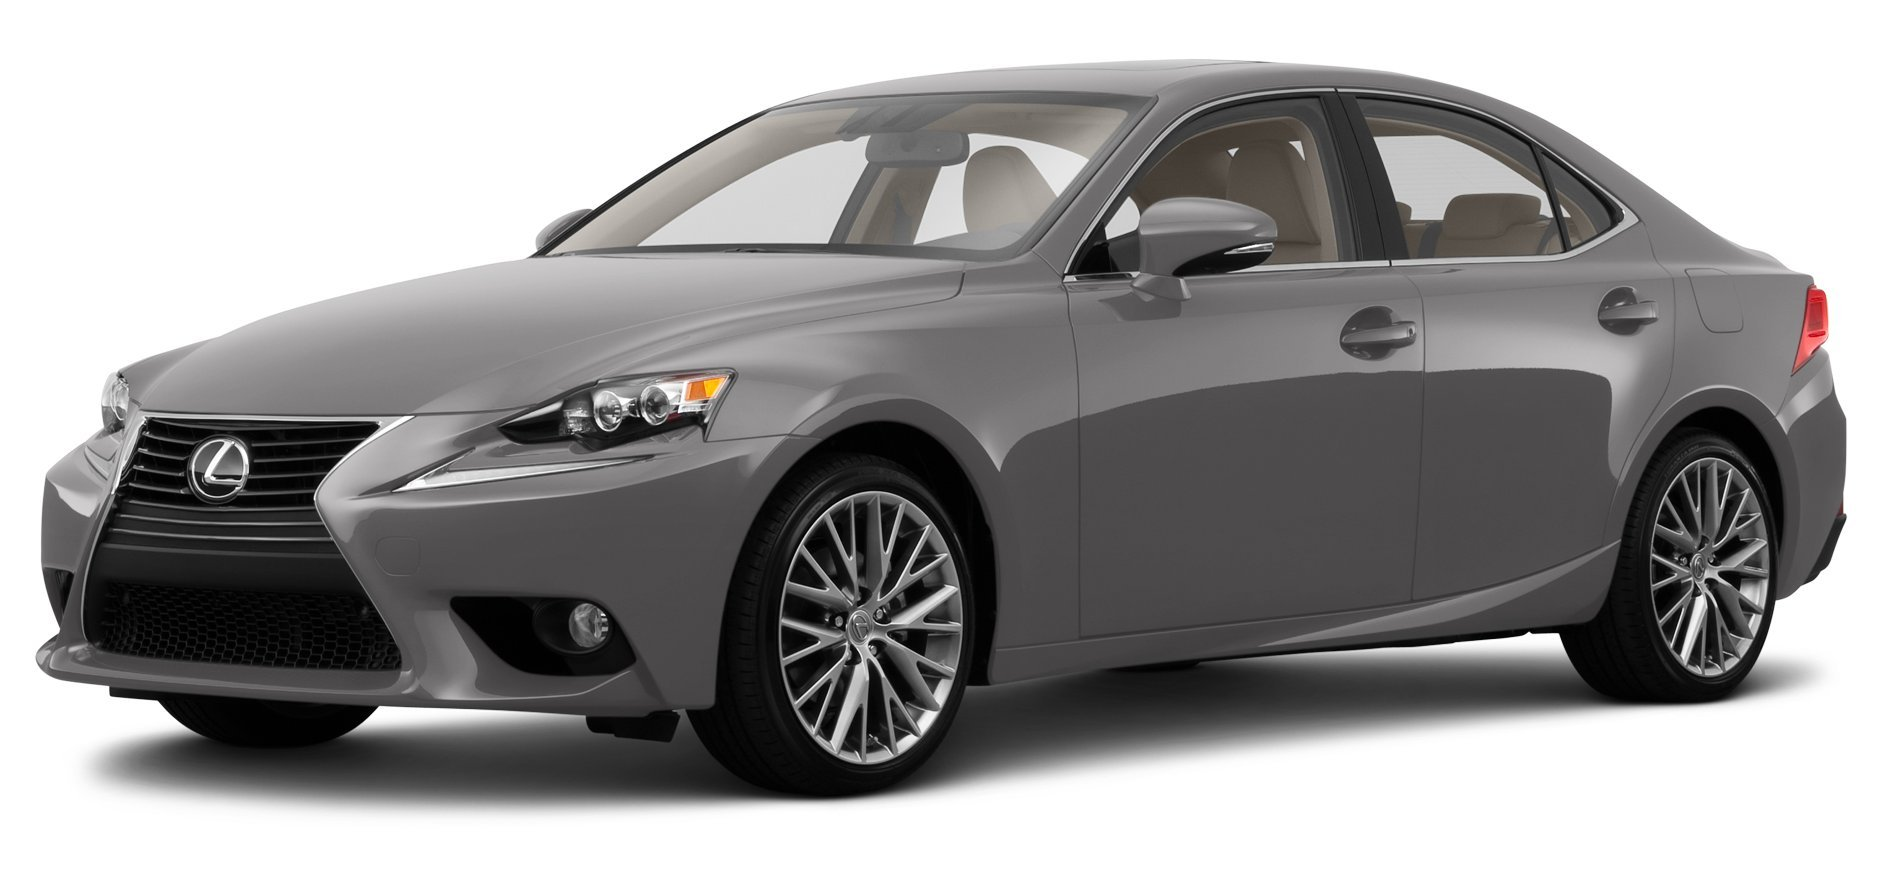 2014 Lexus IS250, 4 Door Sport Sedan Automatic Transmission All Wheel Drive  ...